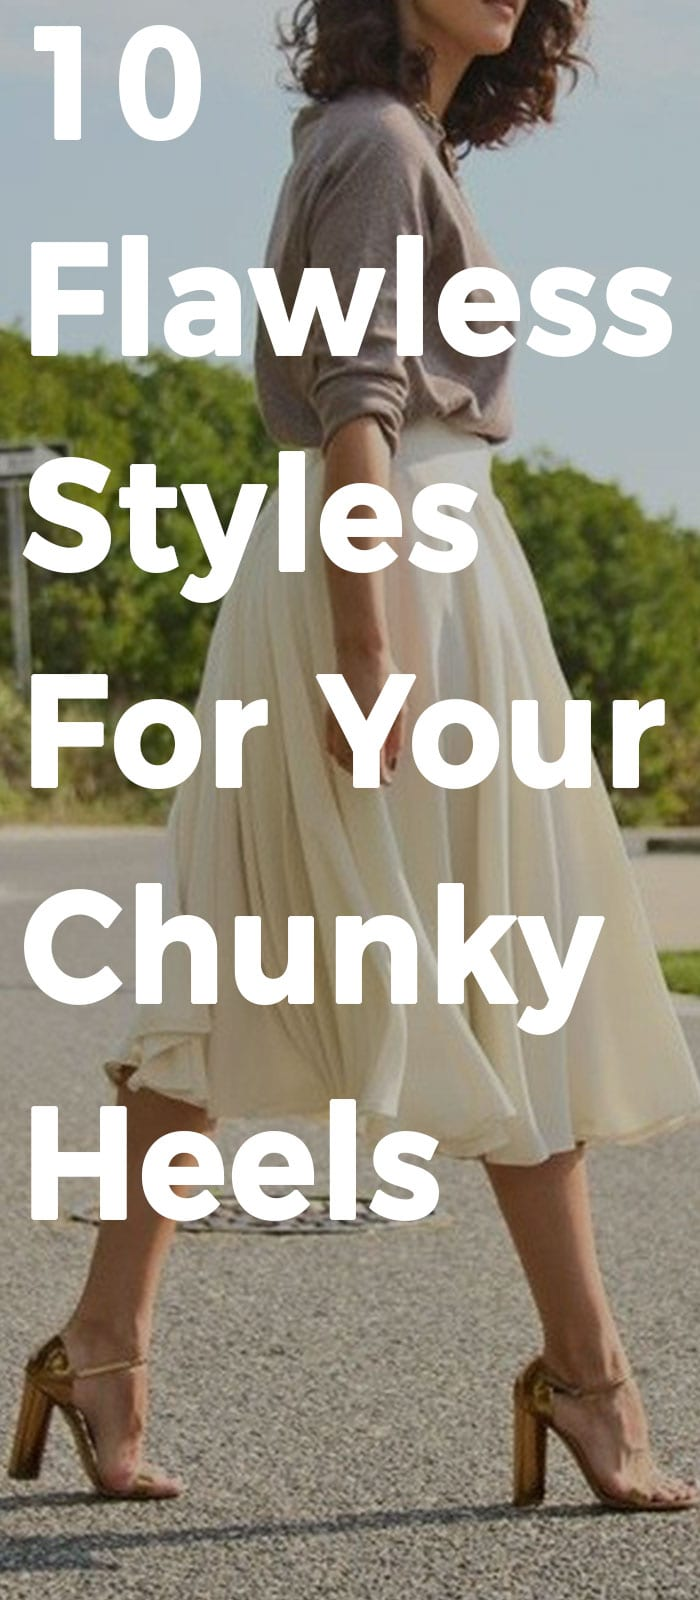 10 Flawless Styles For Your Chunky Heels